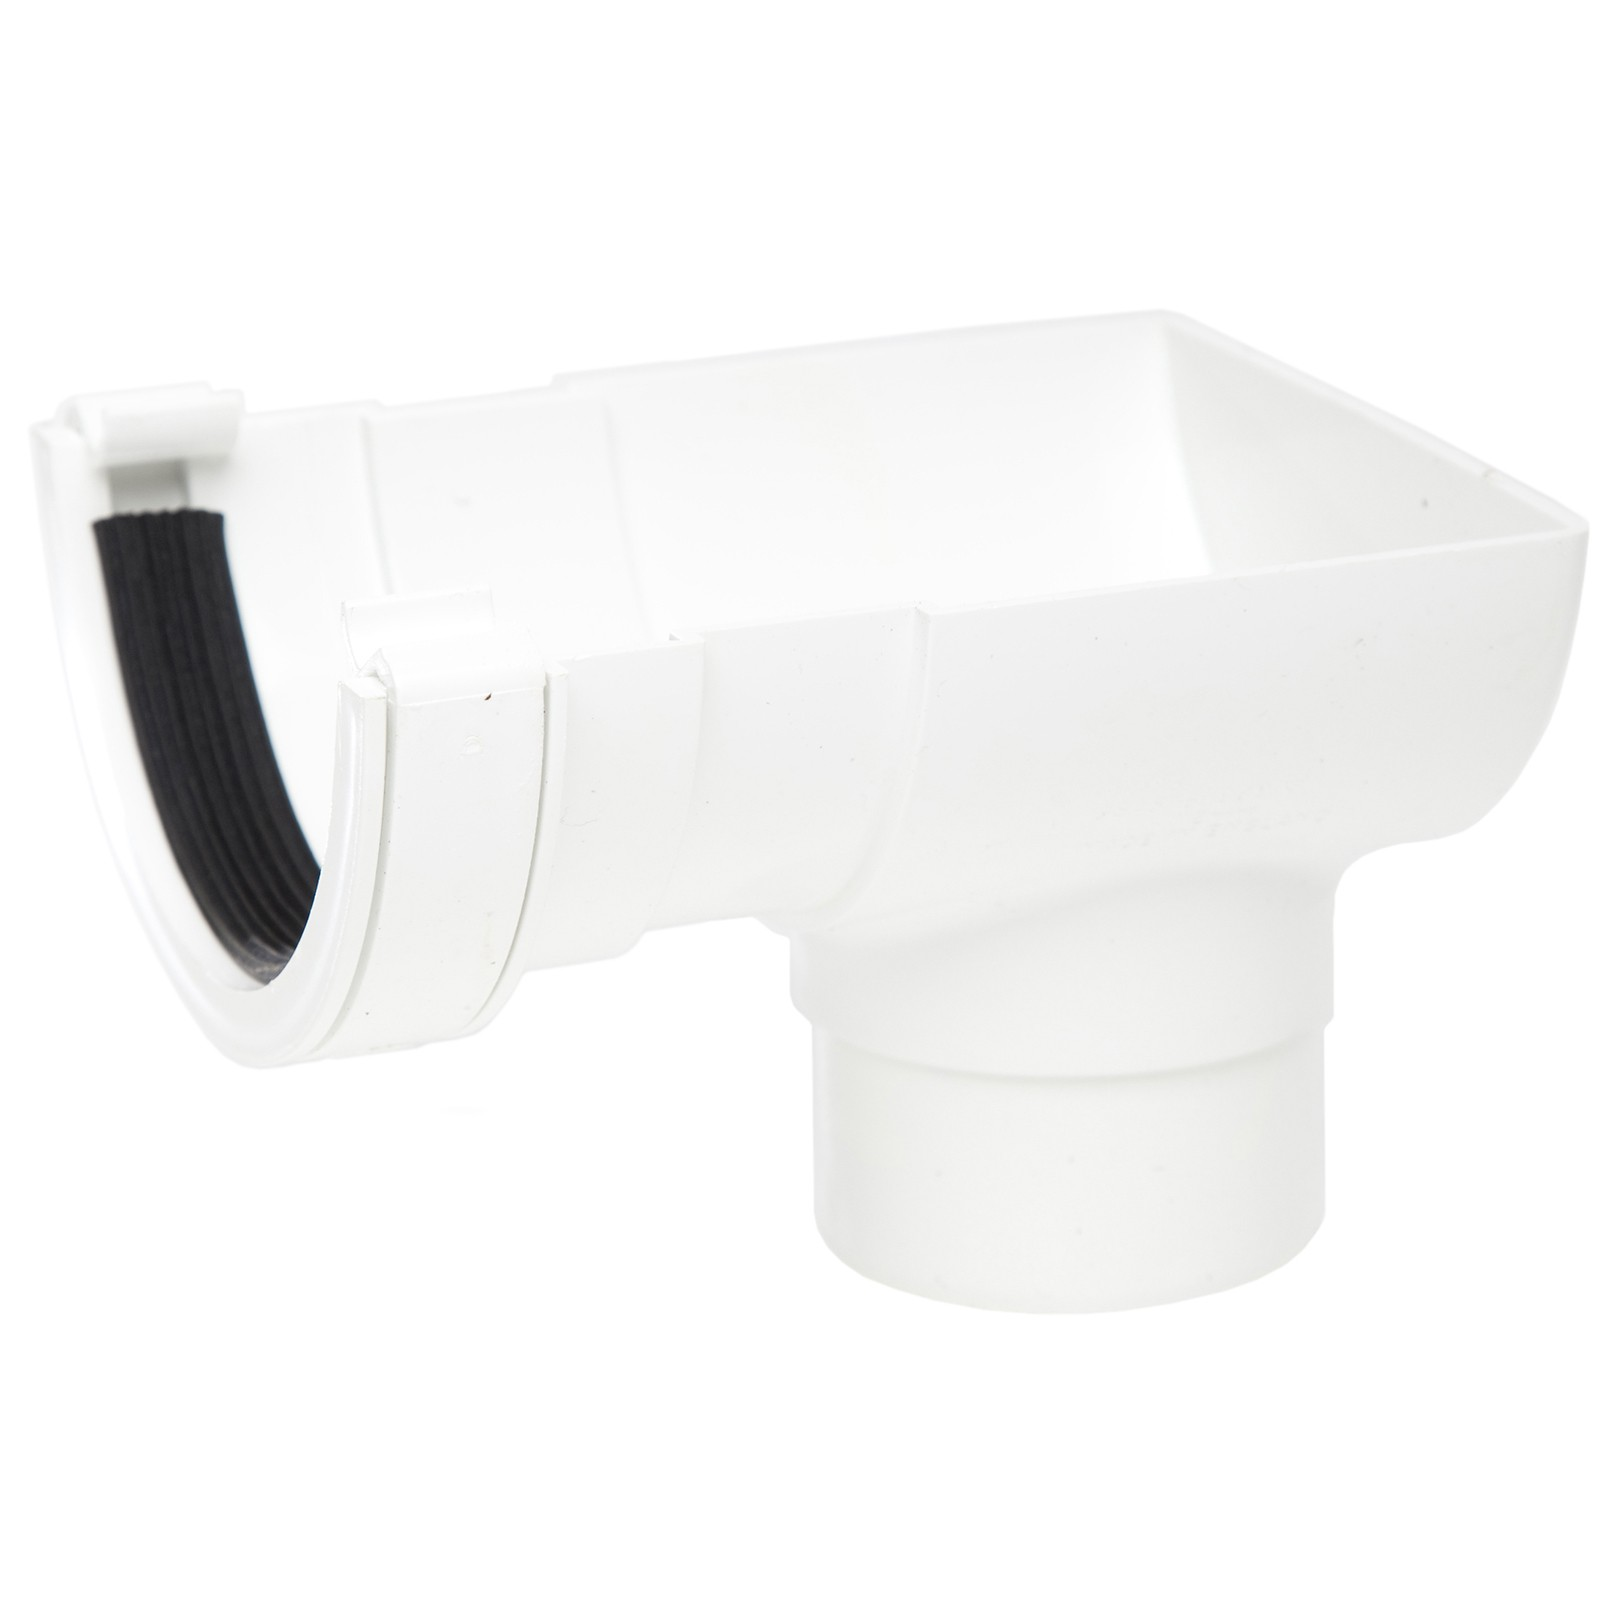 Polypipe 112mm Half Round Gutter Stop End Outlet - White